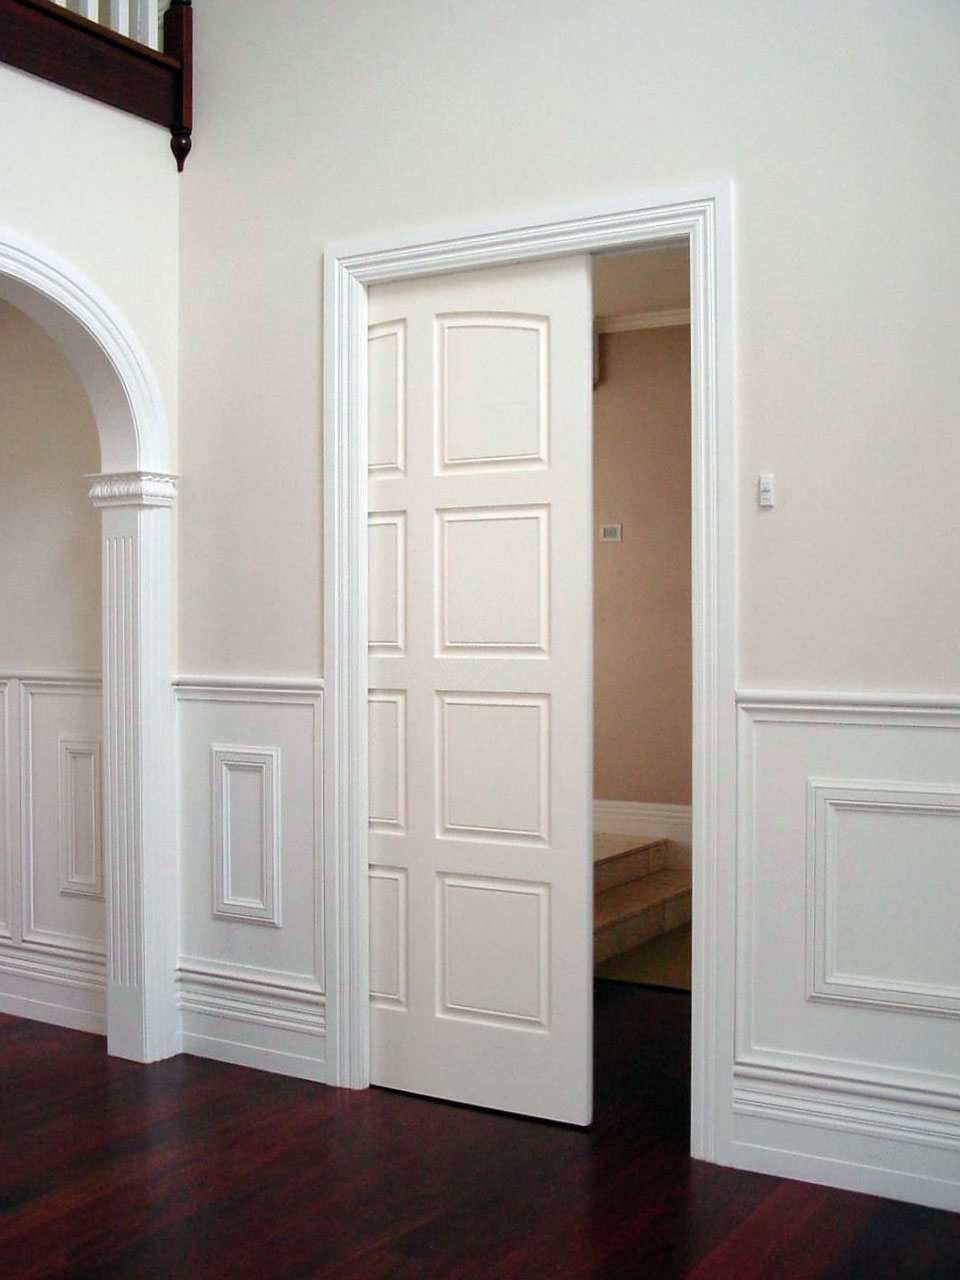 Autocav Residential with custom door